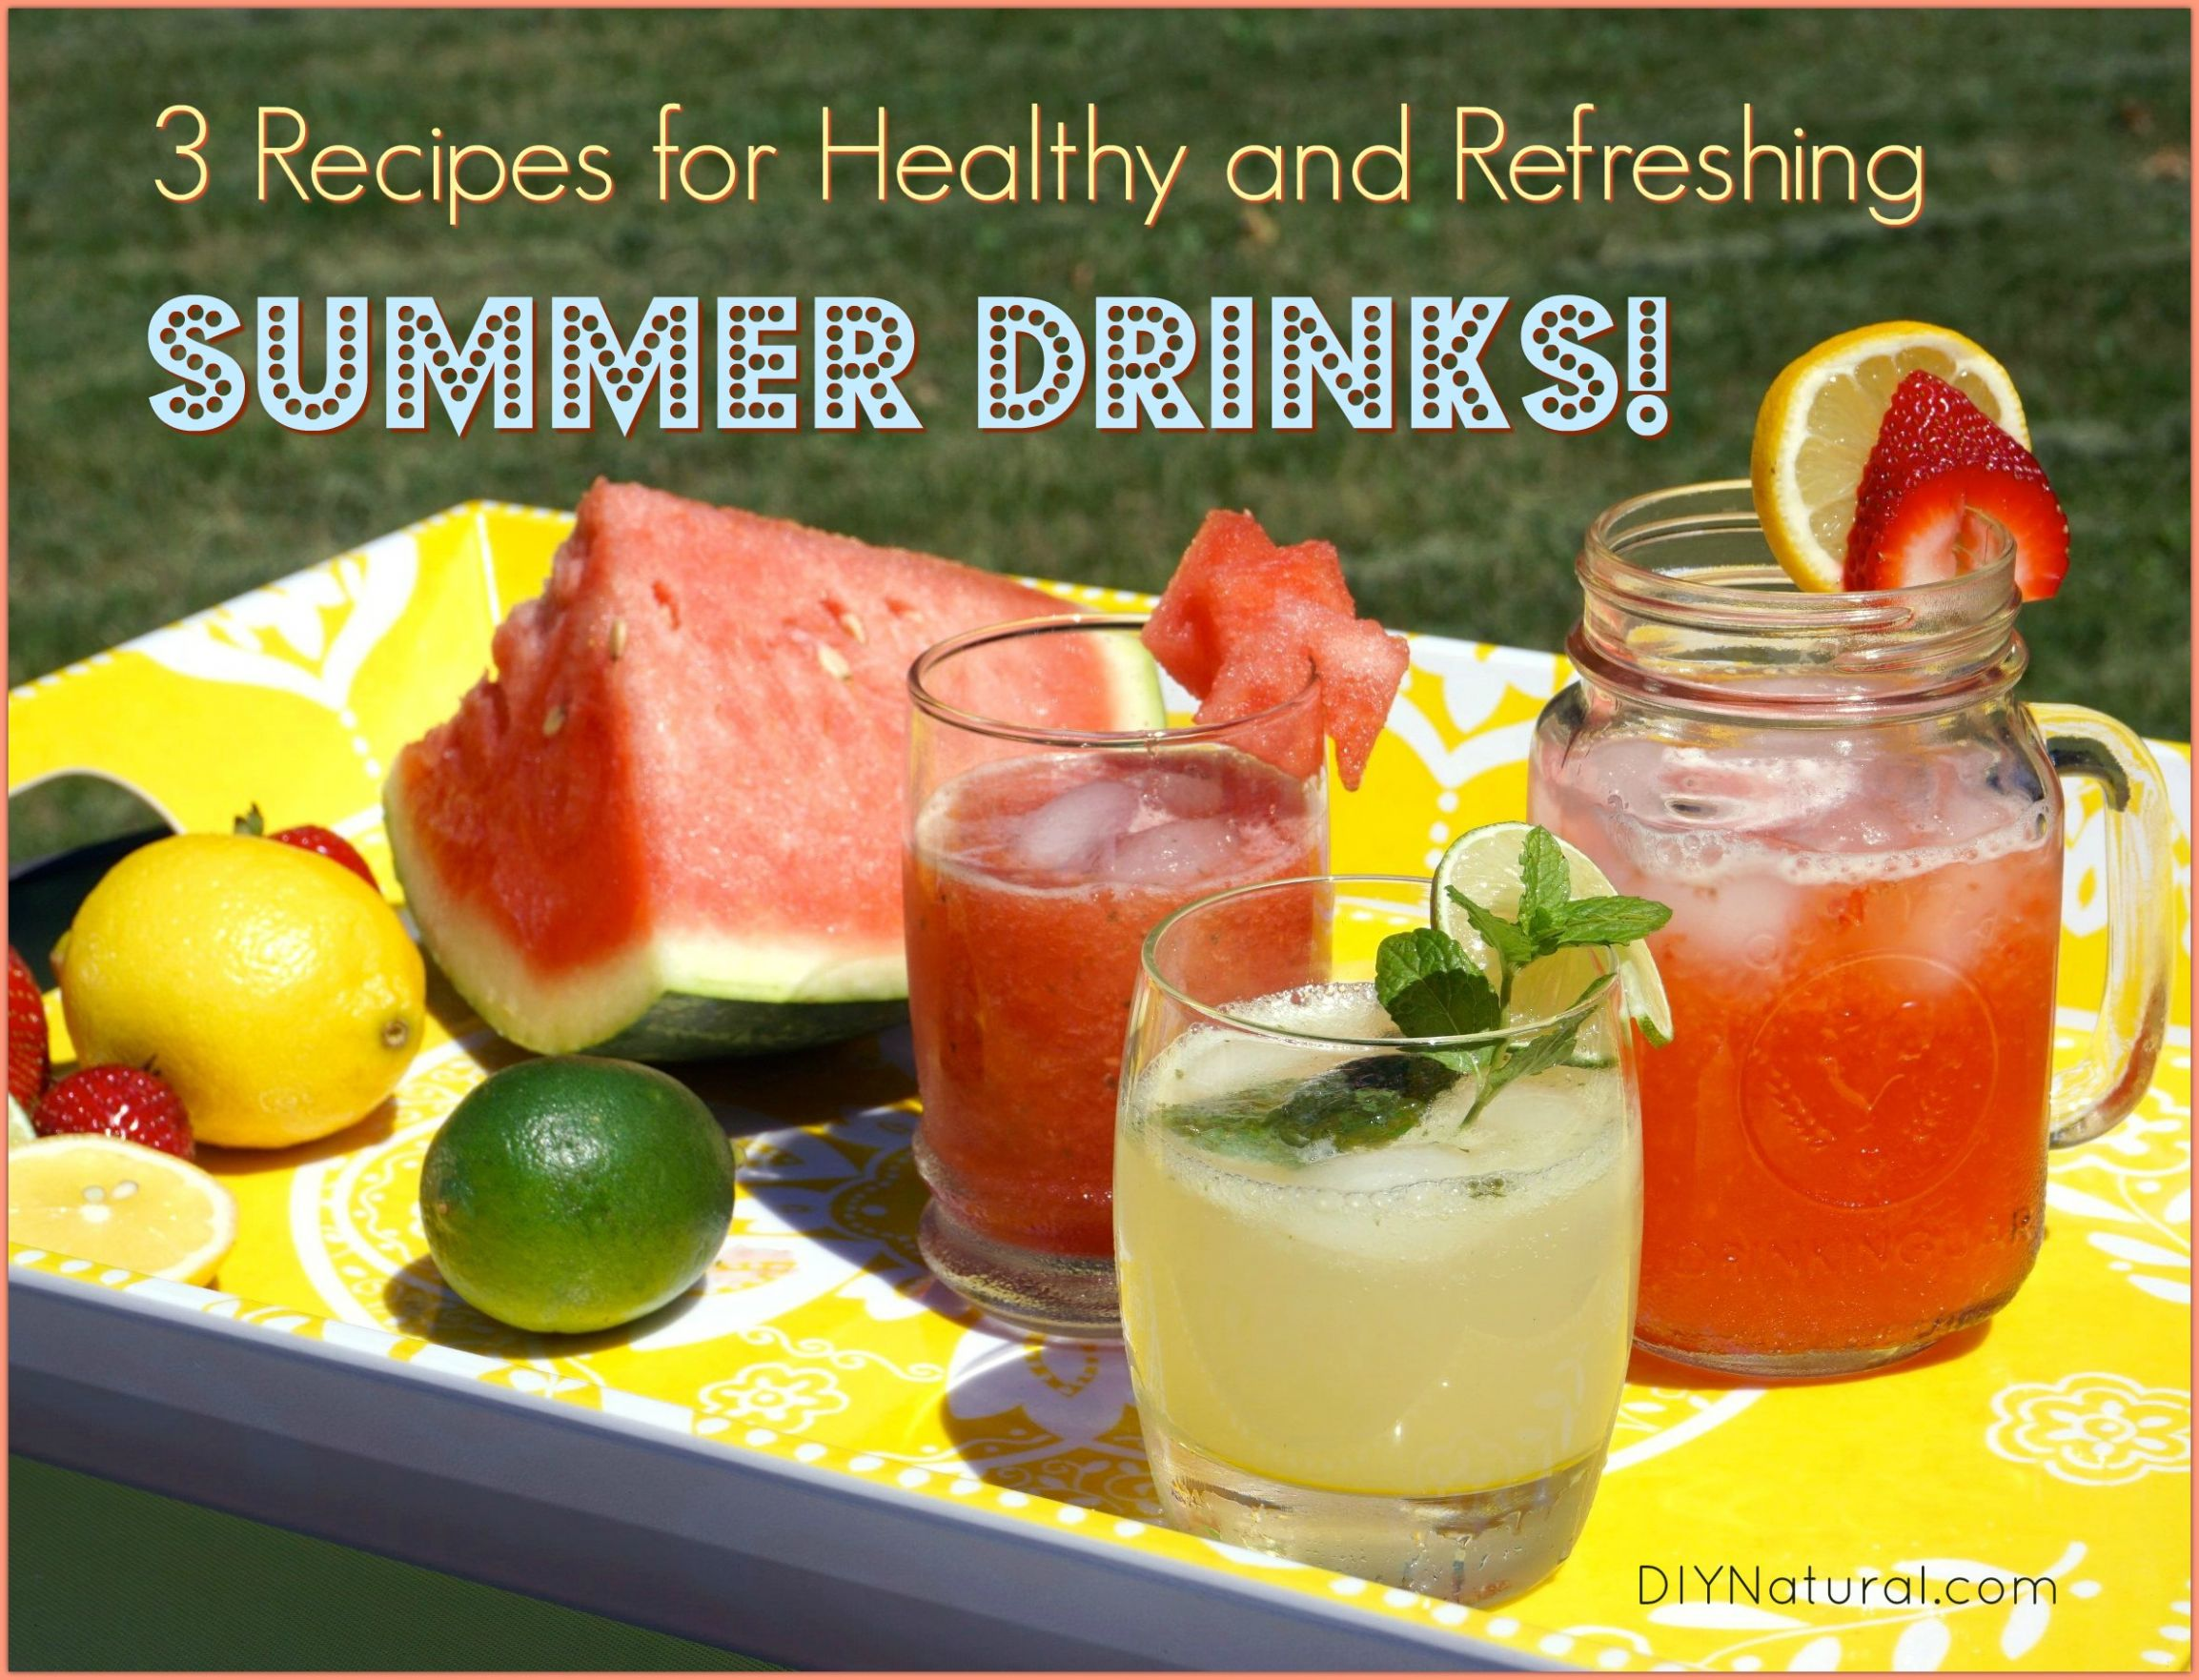 Summer Drinks: 11 Healthy, Refreshing Summer Drink Recipes - Healthy Recipes Drinks